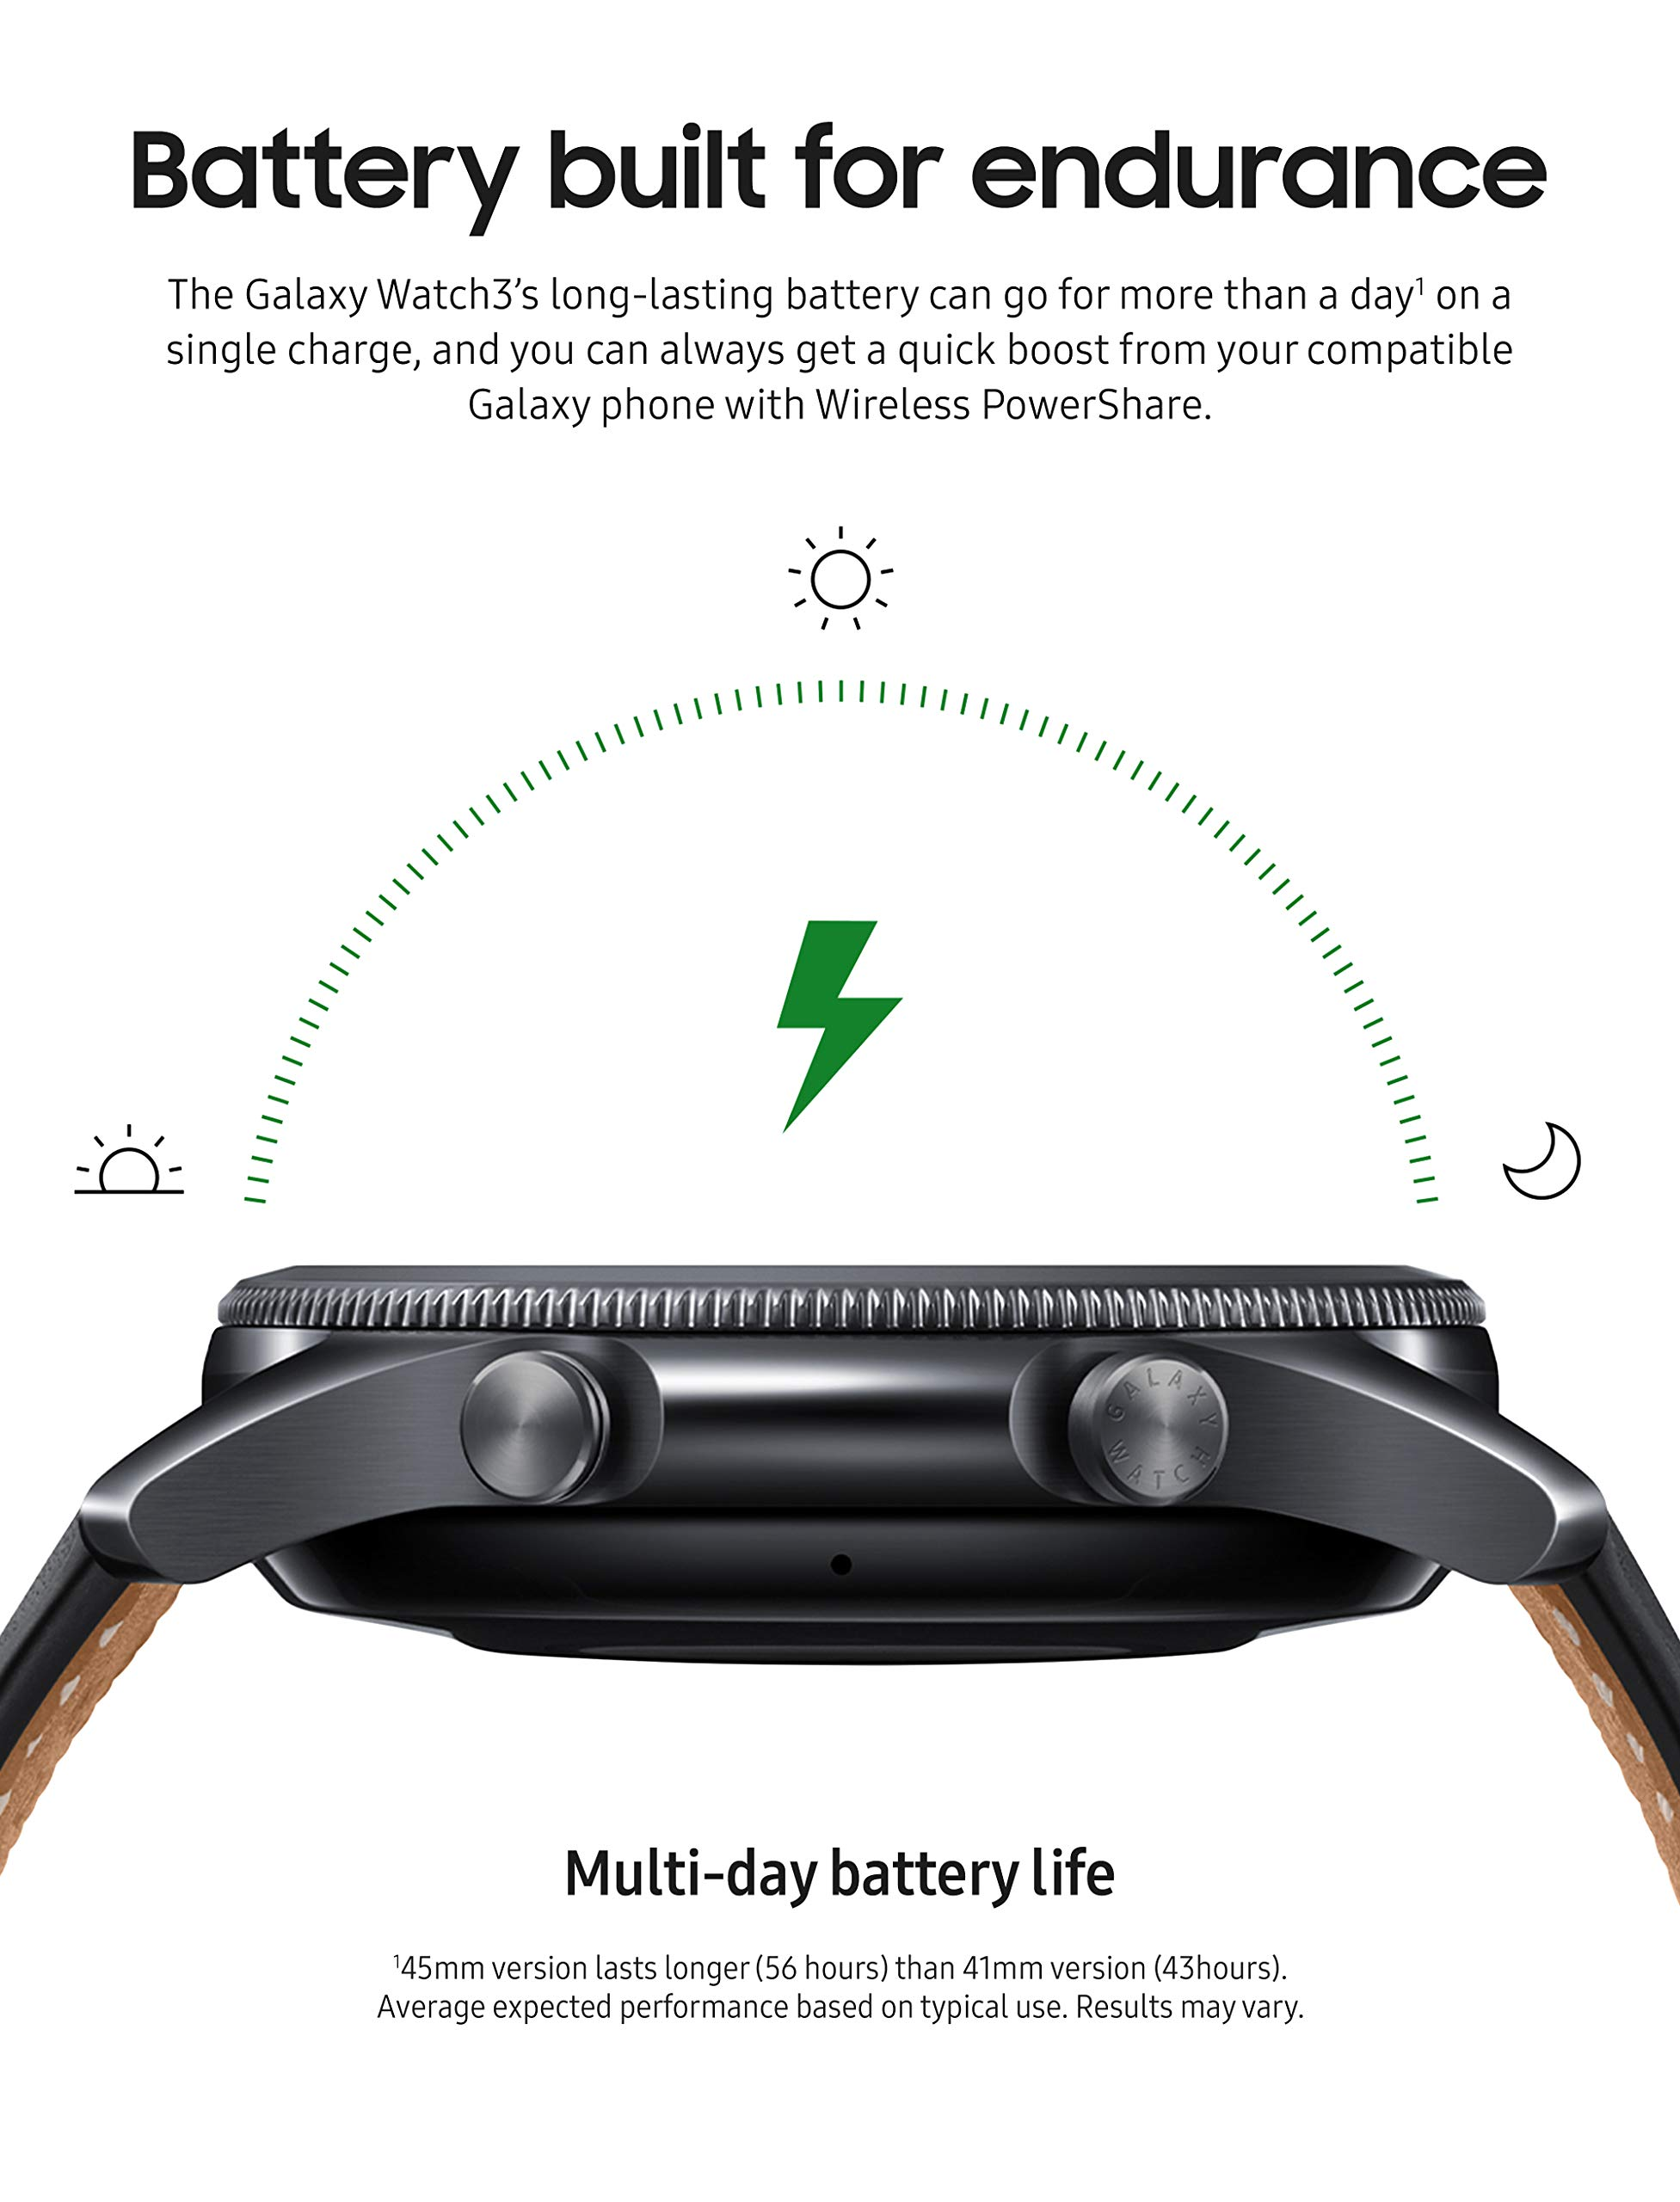 SAMSUNG Galaxy Watch 3 (45mm, GPS, Bluetooth, Unlocked LTE) Smart Watch with Advanced Health Monitoring, Fitness Tracking, and Long Lasting Battery - Mystic Black (US Version)